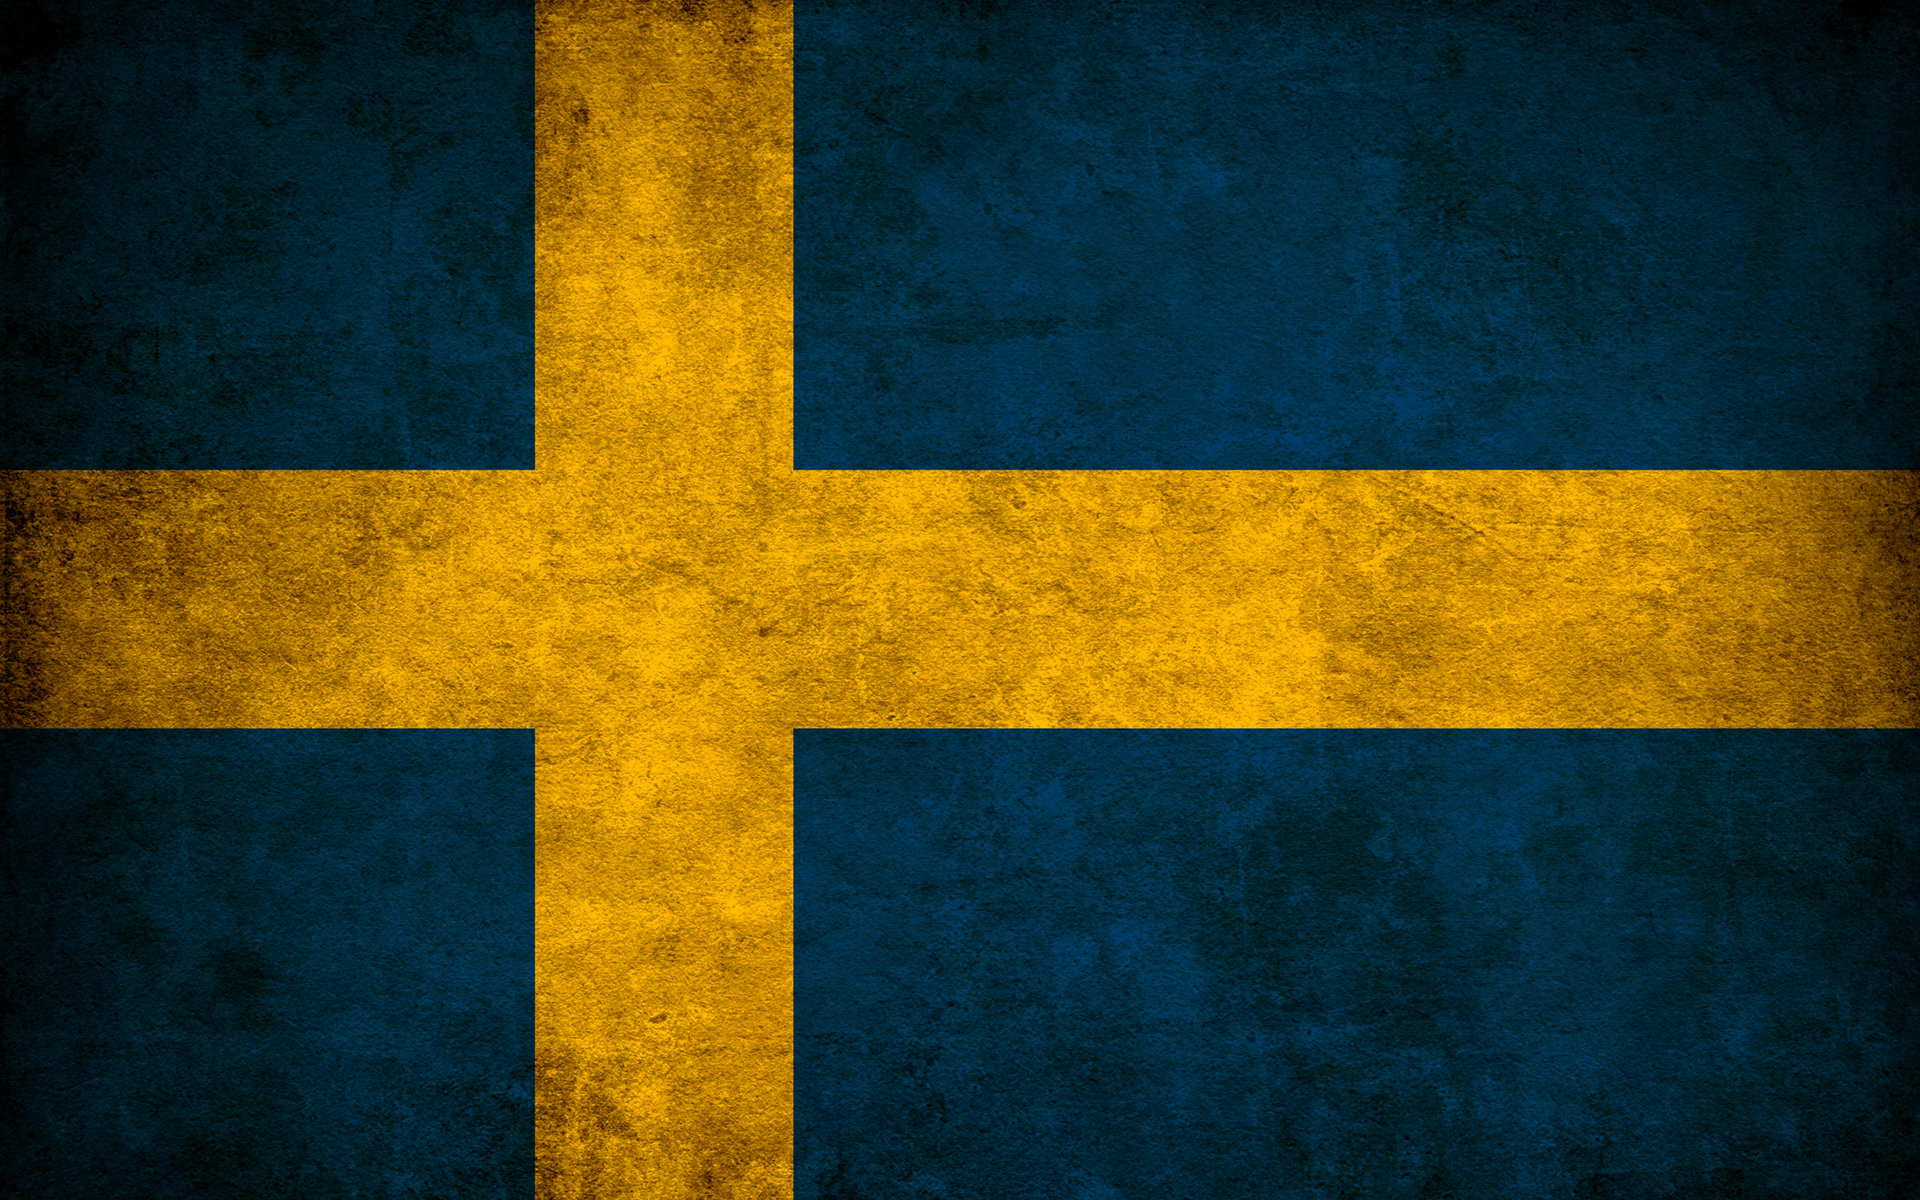 Sweden Flag HD Wallpaper Background Images 1920x1200